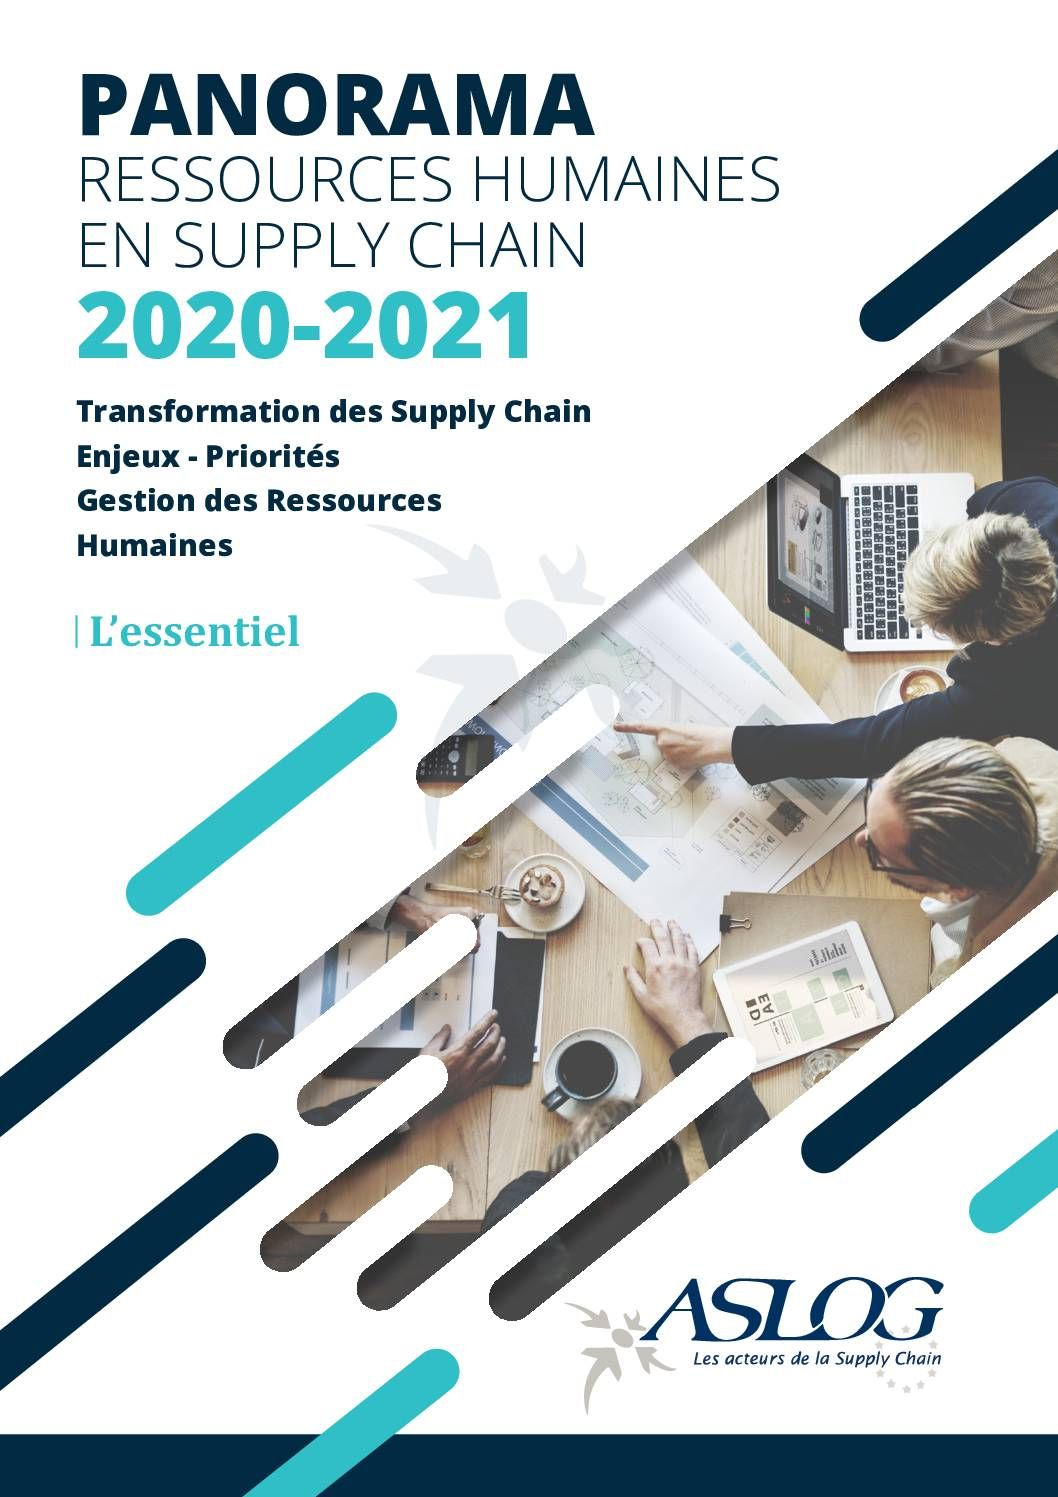 Panorama ressources humaines en supply chain 2020-2021